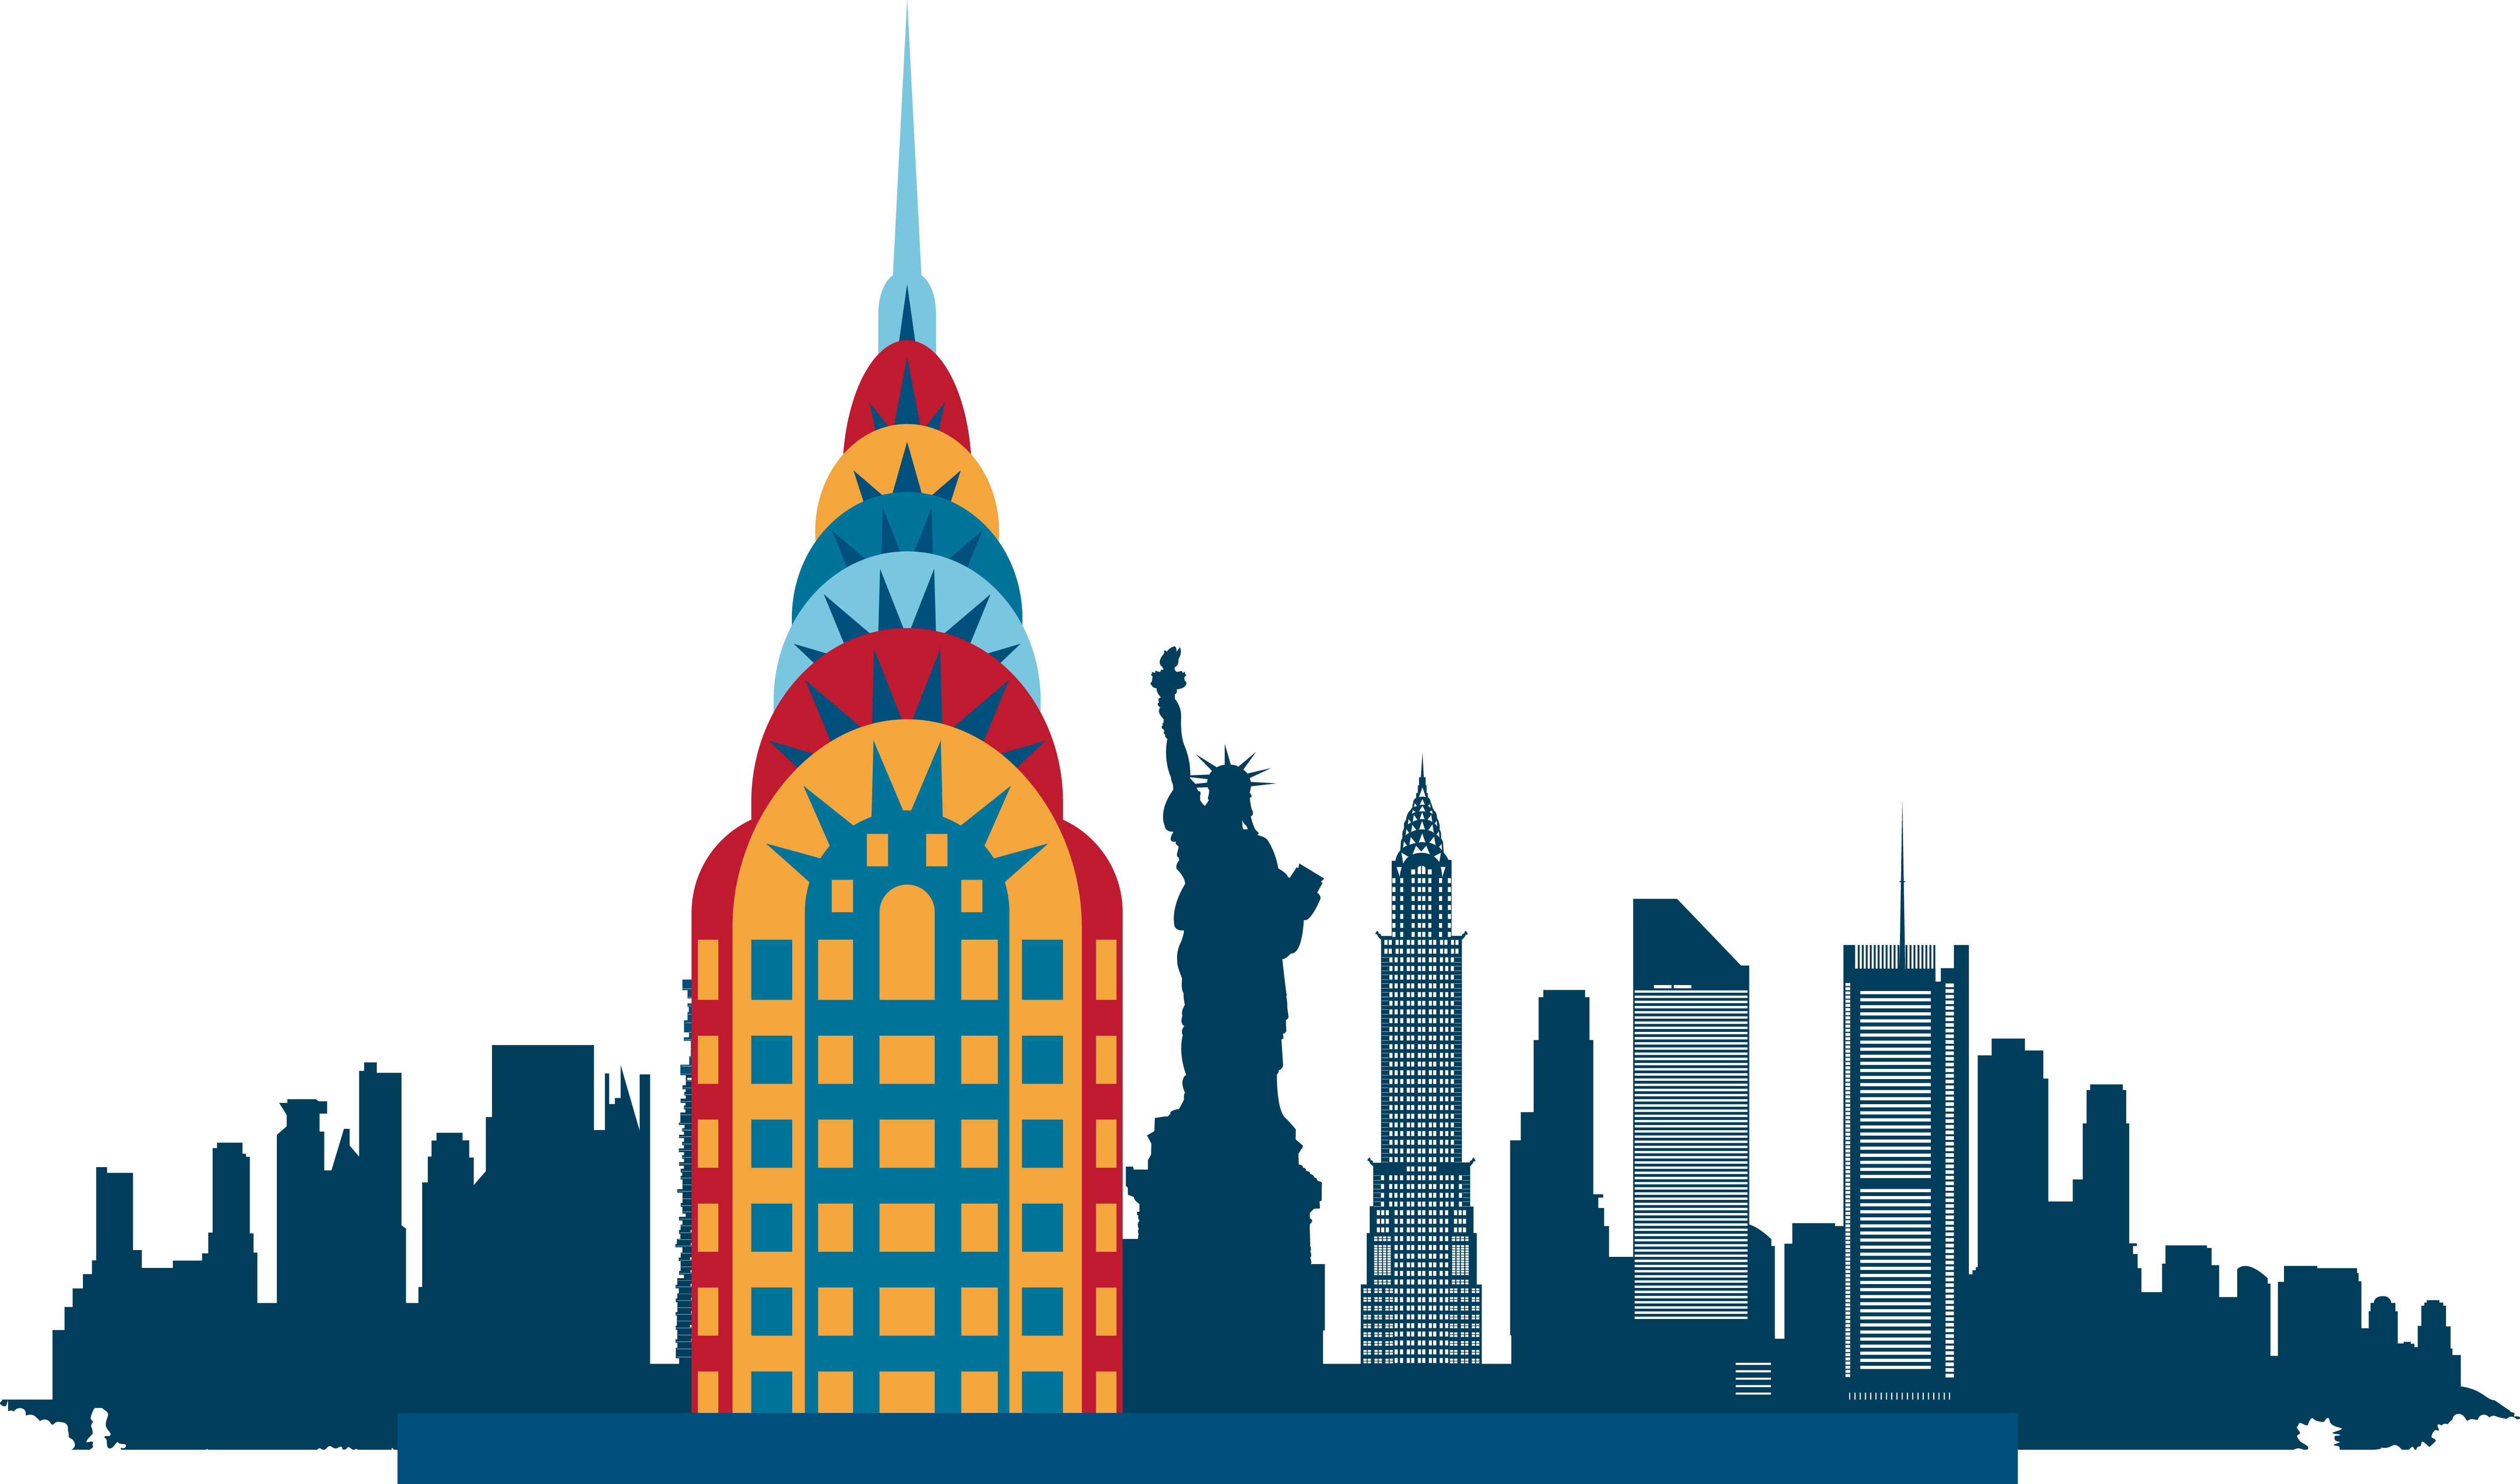 New York City Skyline Silhouette Illustration.